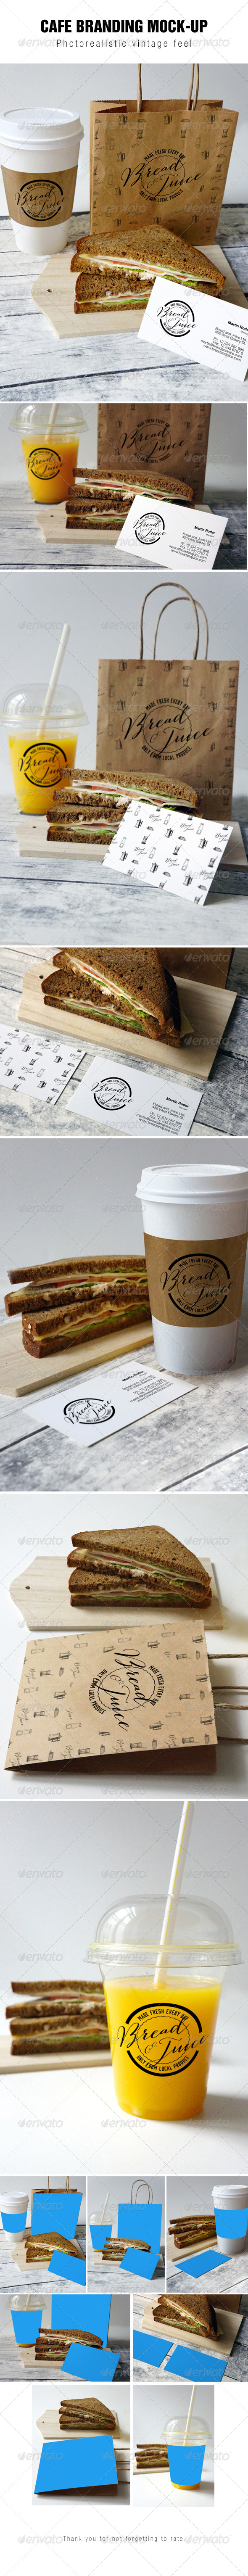 Sandwich Cafe Mockup - Food and Drink Packaging